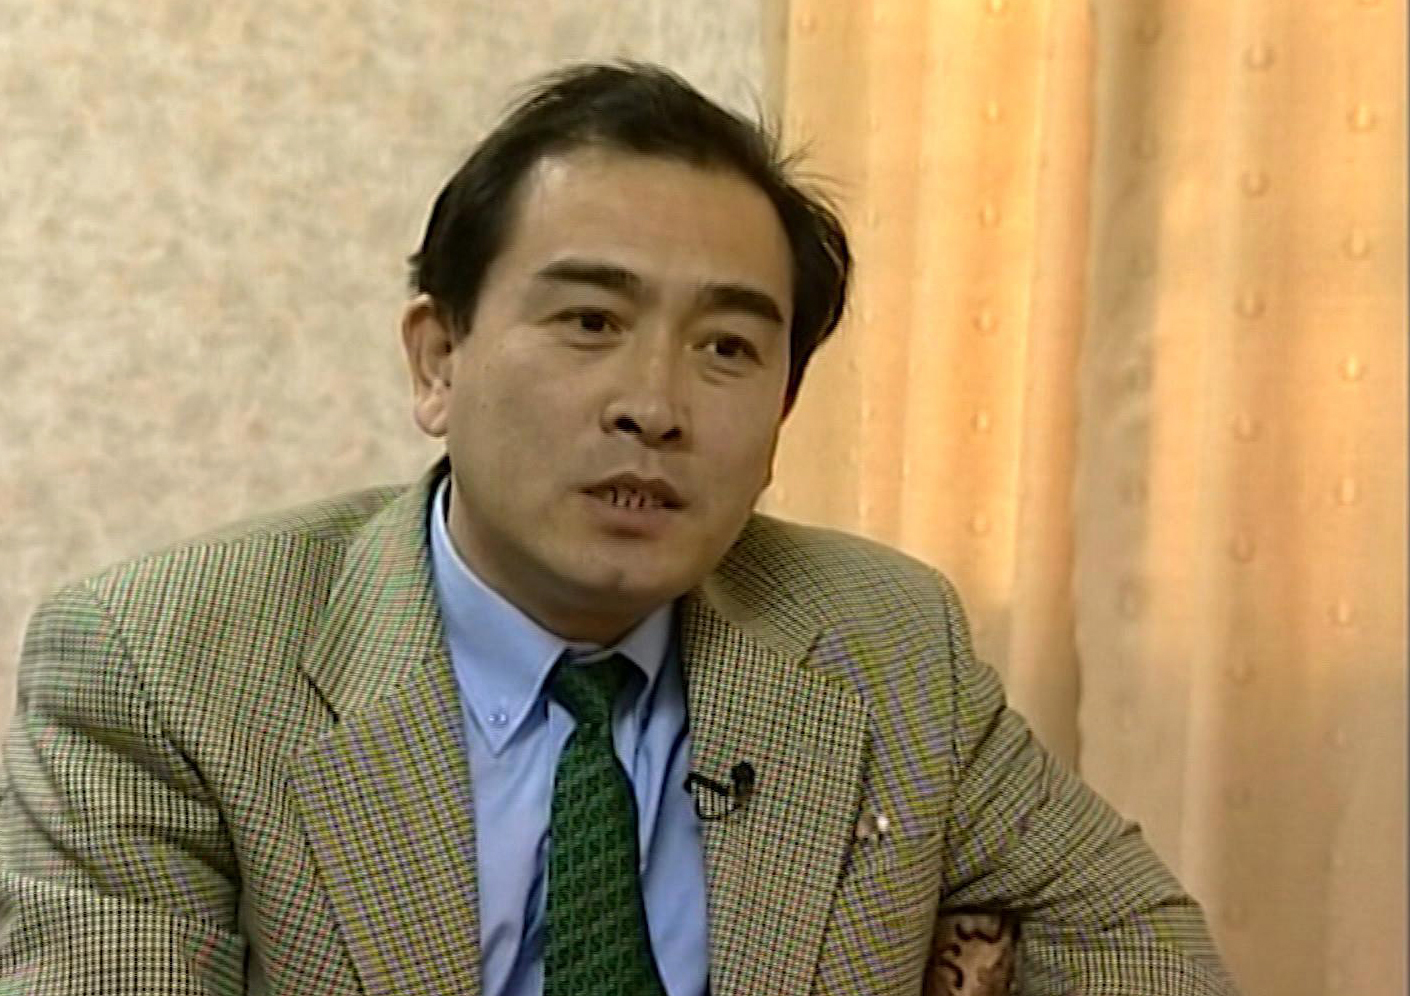 This is an image taken from video taken on April 5, 2004 of Thae Yong Ho,  North Korean diplomat speaking  during an interview in Pyongyang. North Korea diplomat Thae Yong Ho who was based in London has defected, according to South Korean officials. ...